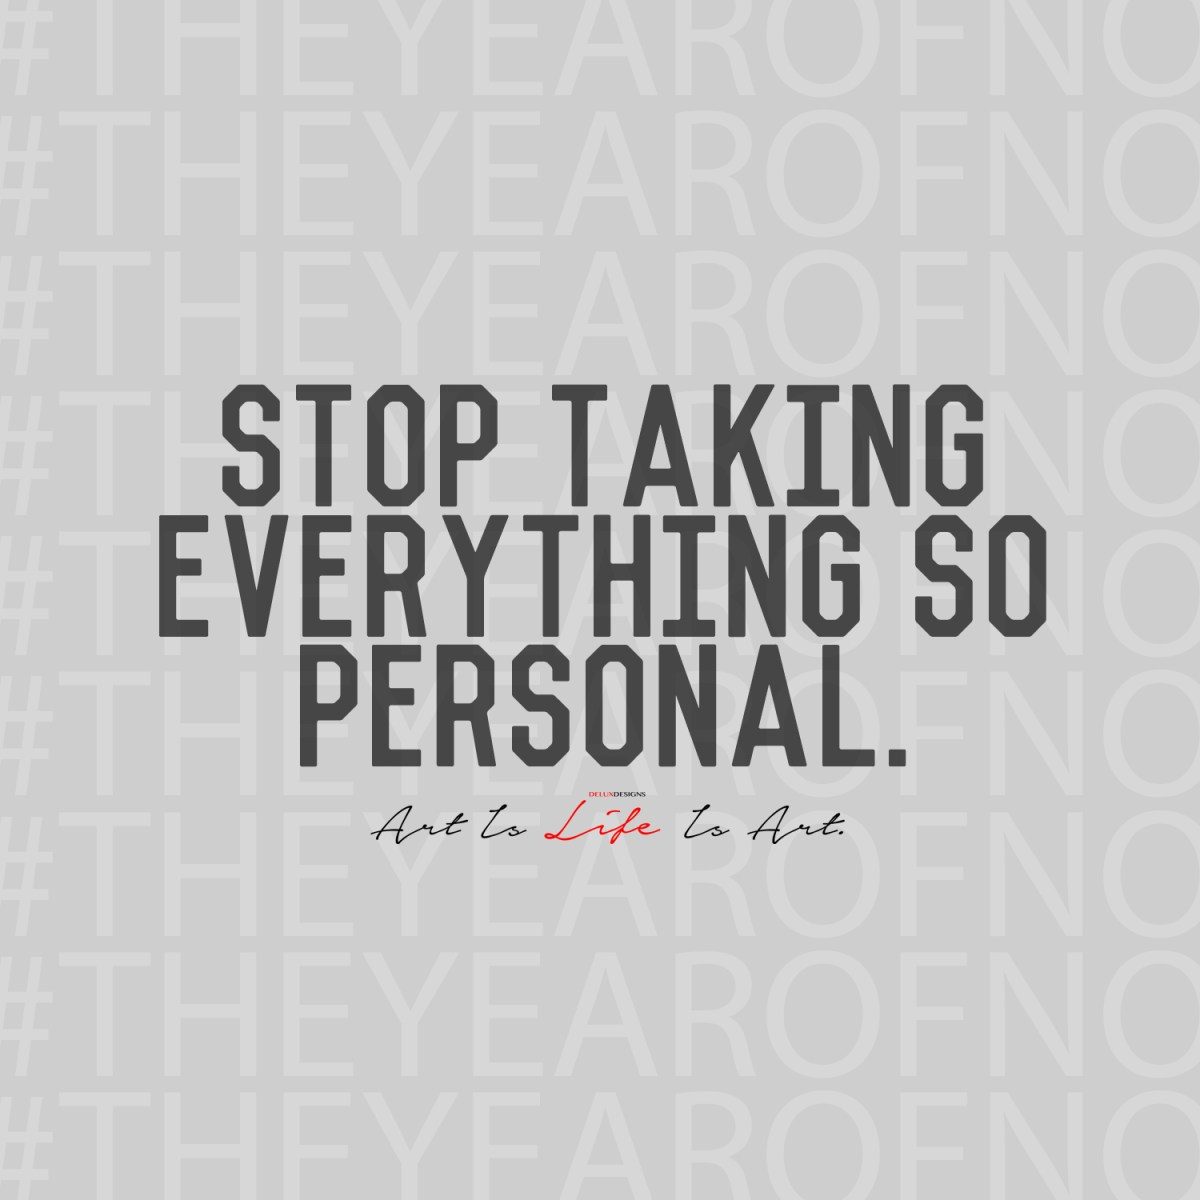 #TheYearofNo - Day 3: Stop Taking Everything So Personal